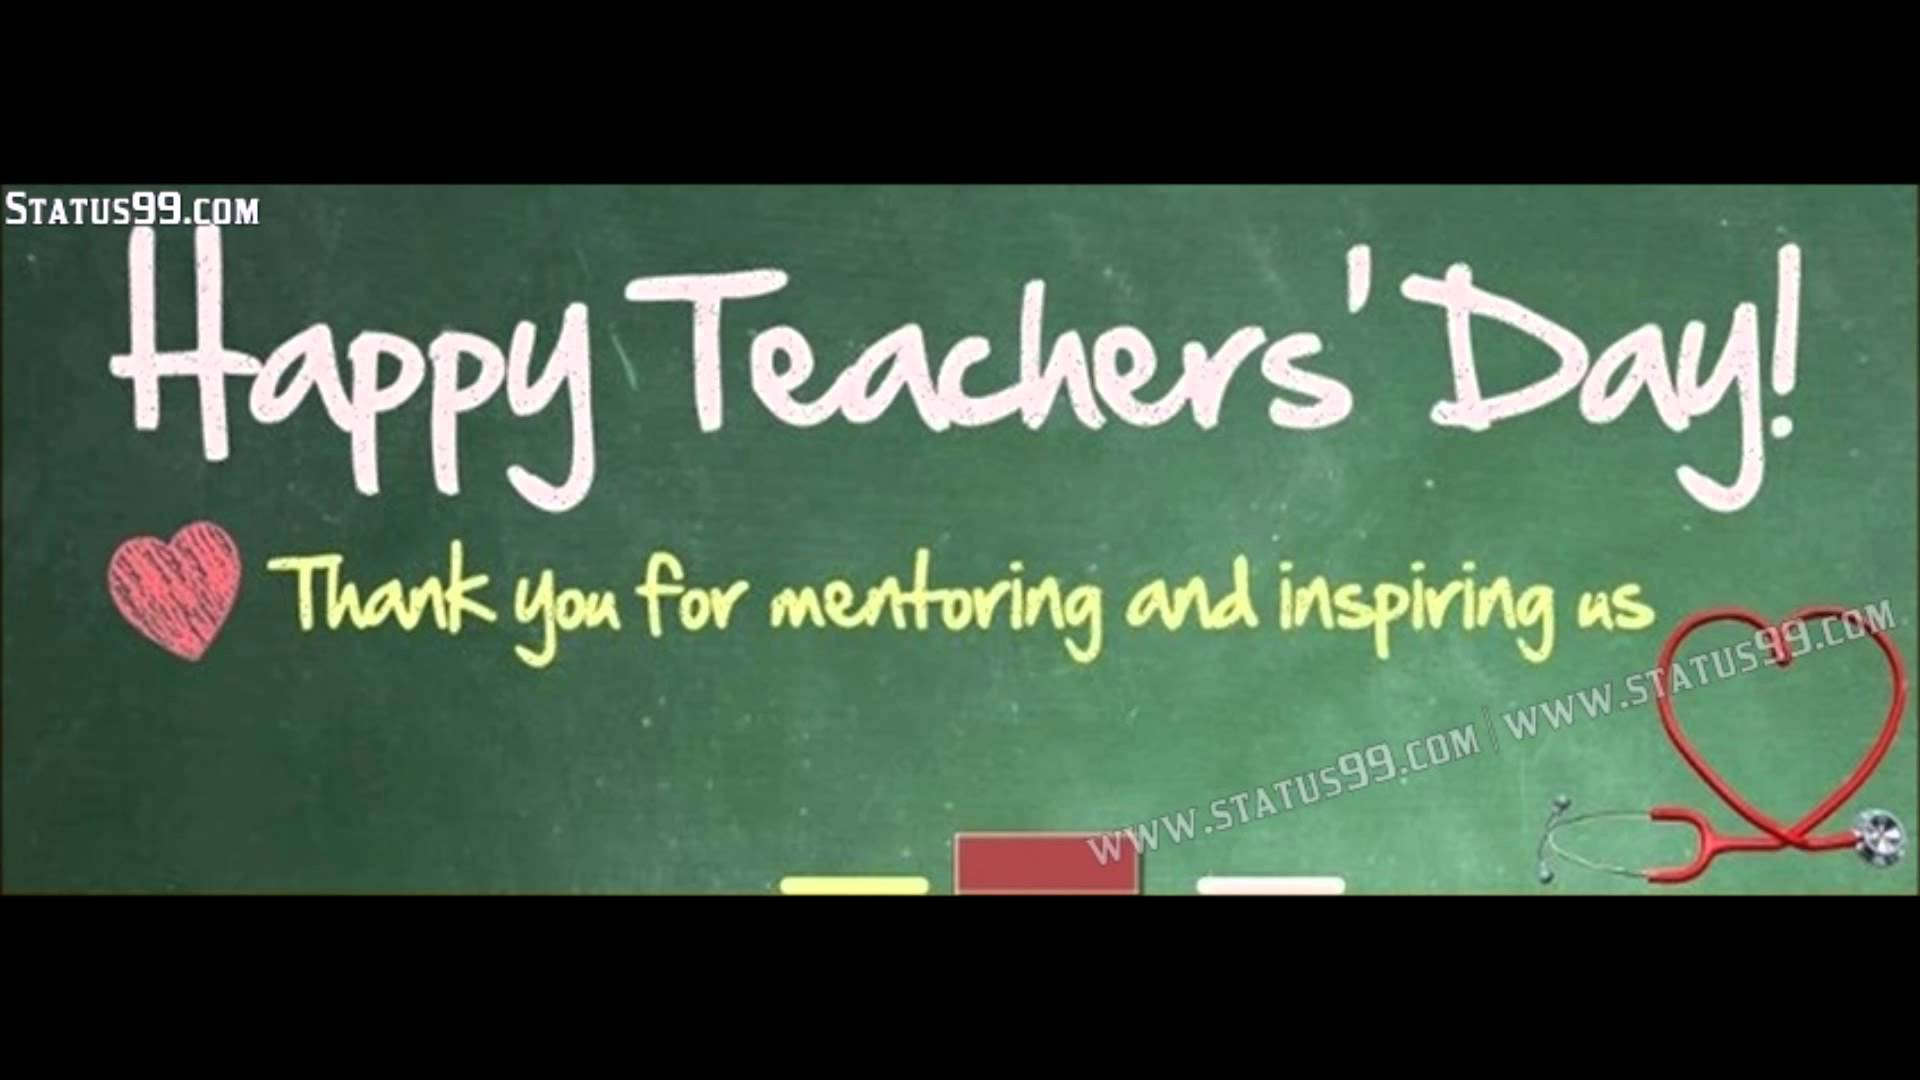 50 happy world teachers day wishes images and photos world teachers day thank you for mentoring and inspiring us kristyandbryce Images